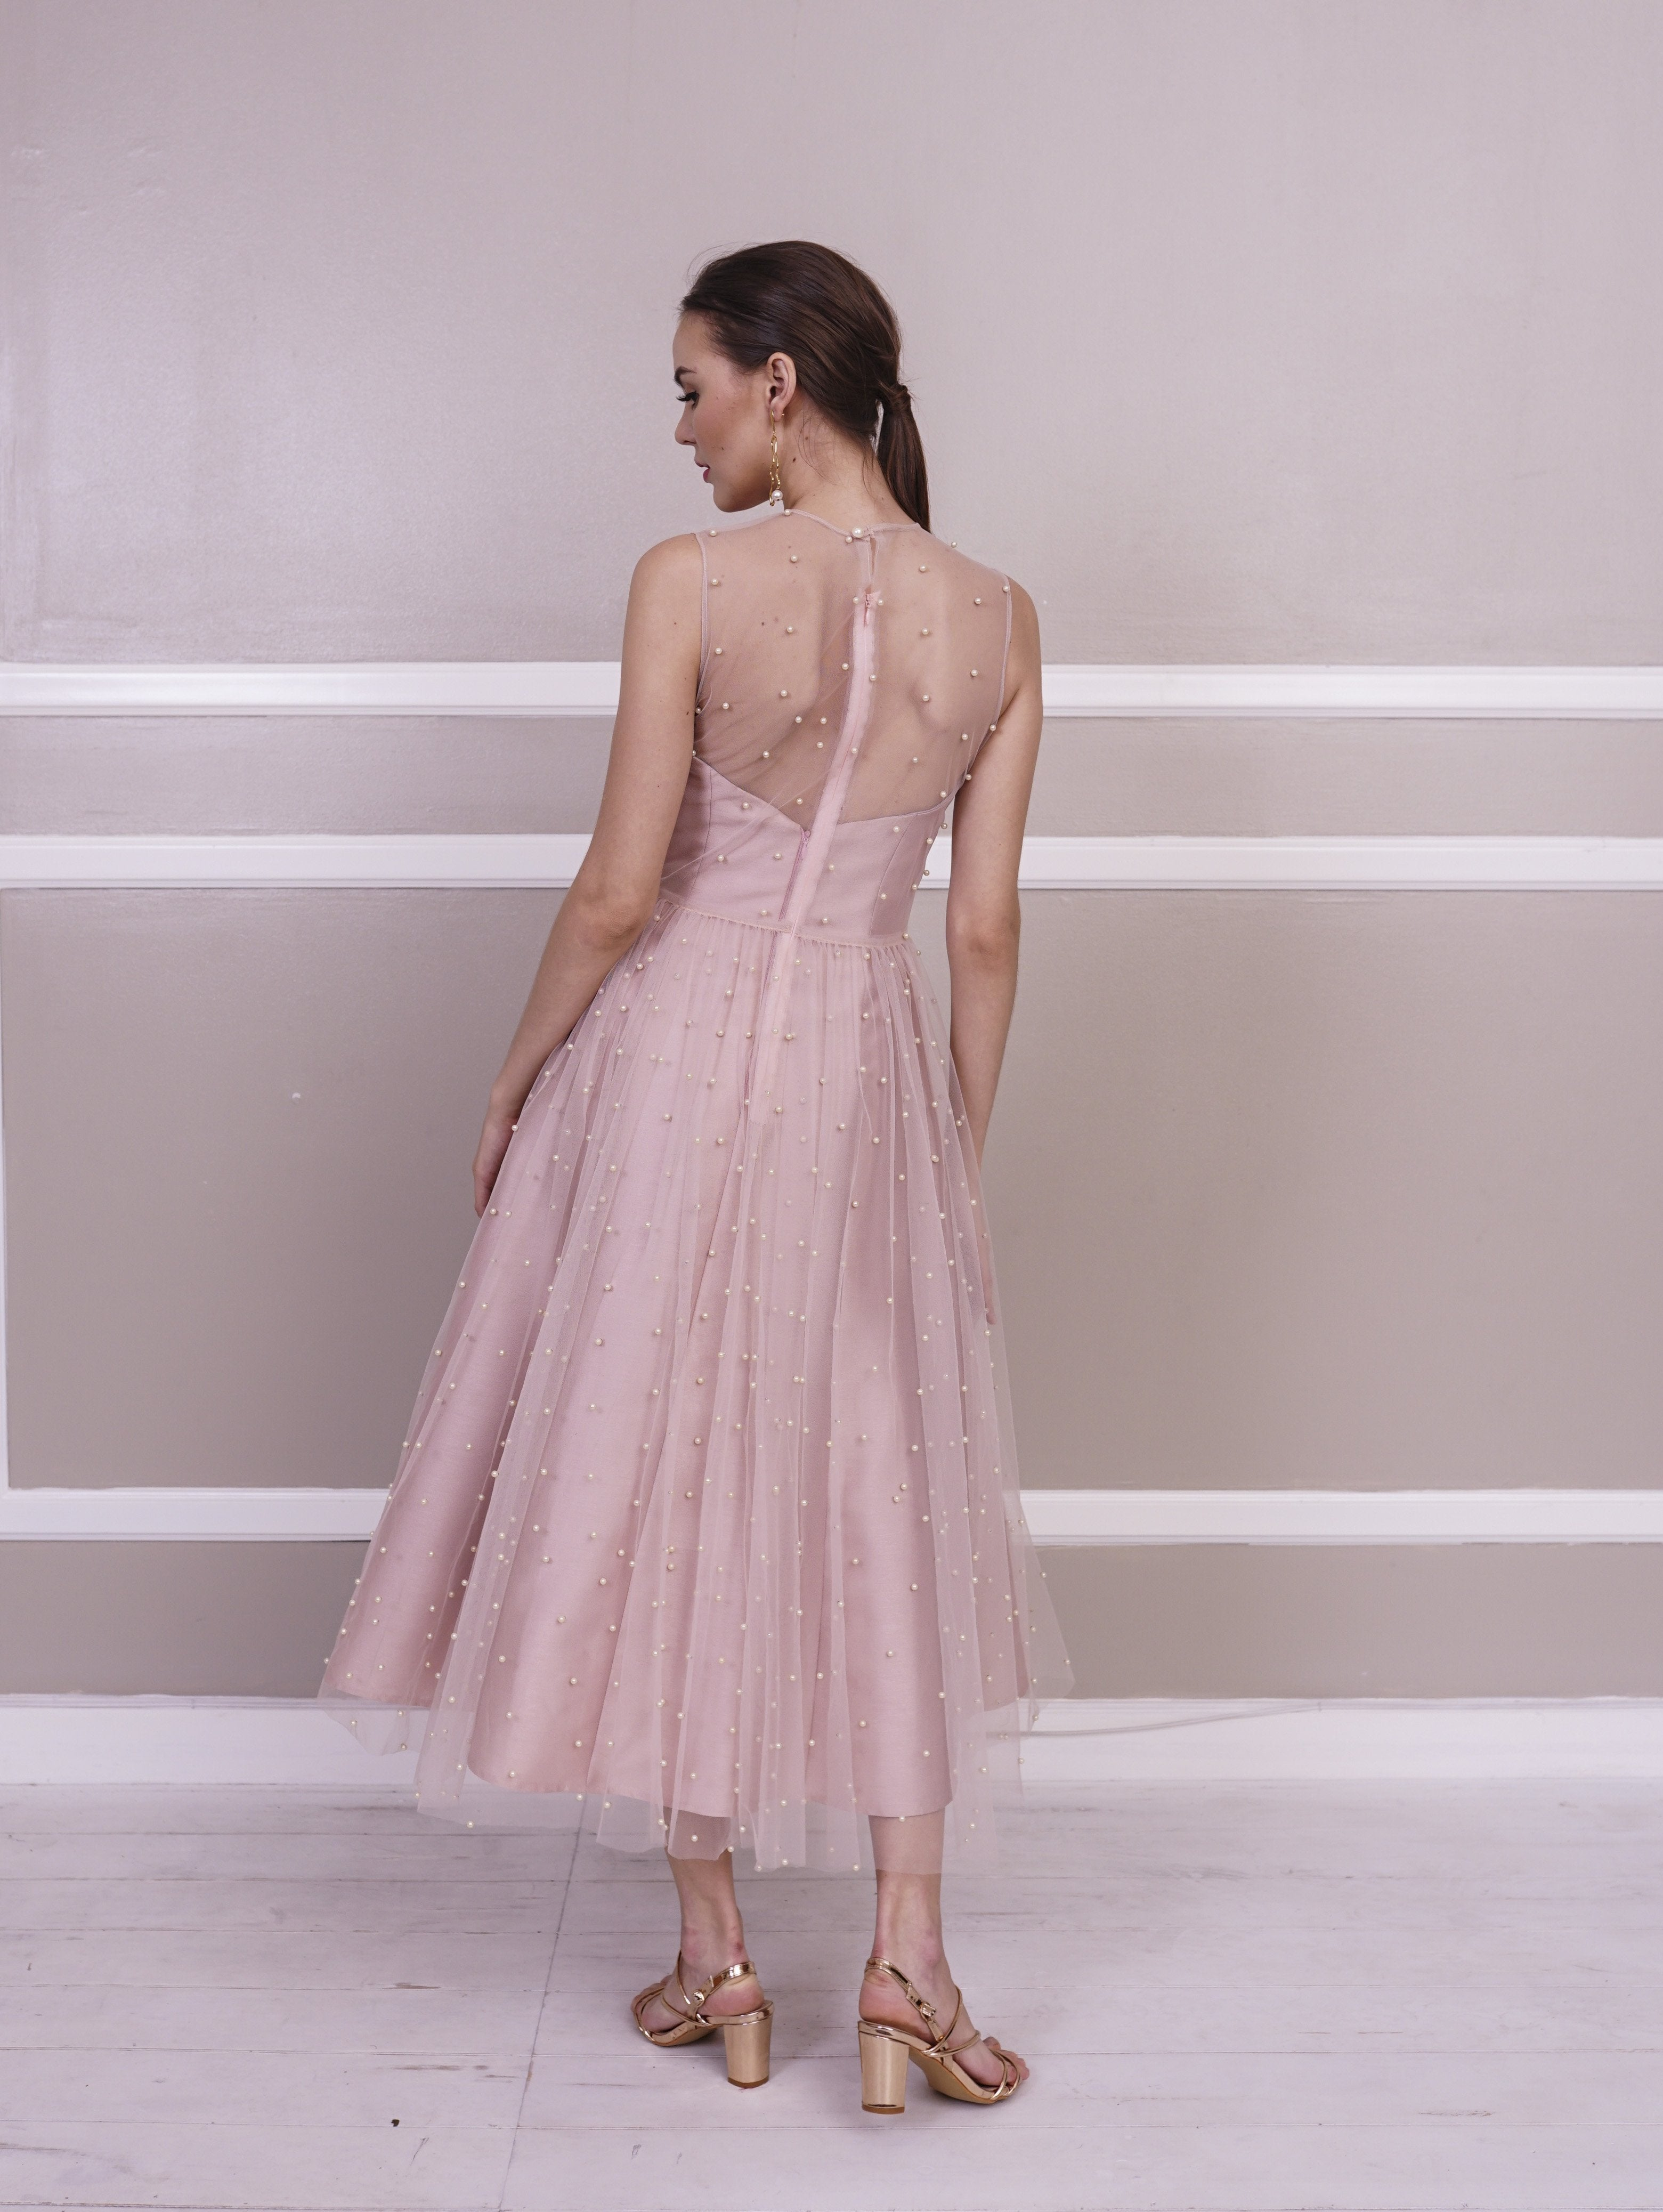 af2501615b8c ... Dress - Jill Lao Samantha Strapless Midi Dress With Pearl Tulle Overlay